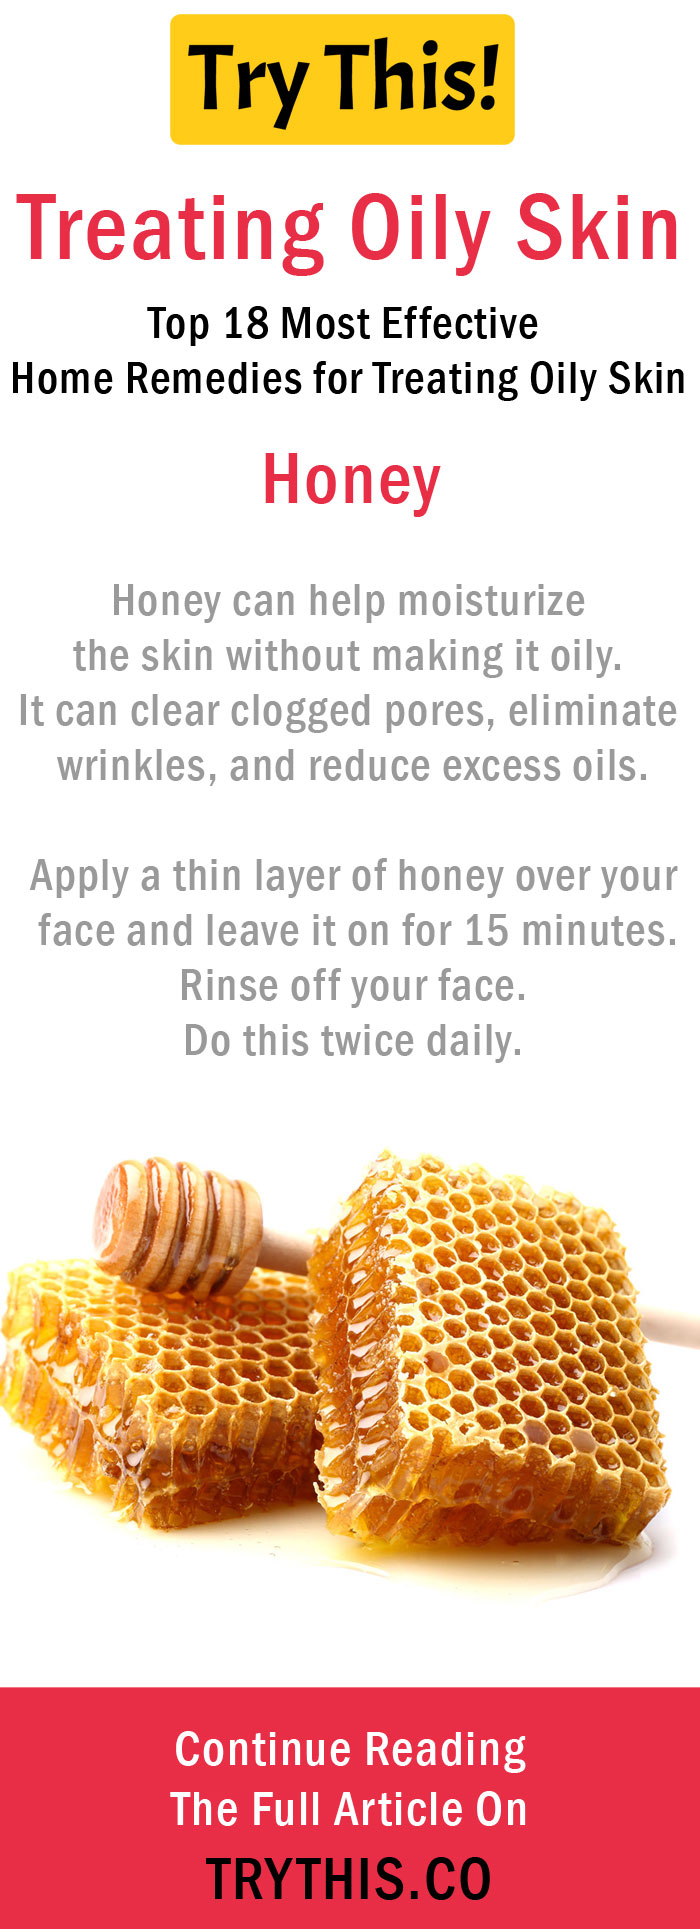 Home Remedies for Treating Oily Skin - Honey